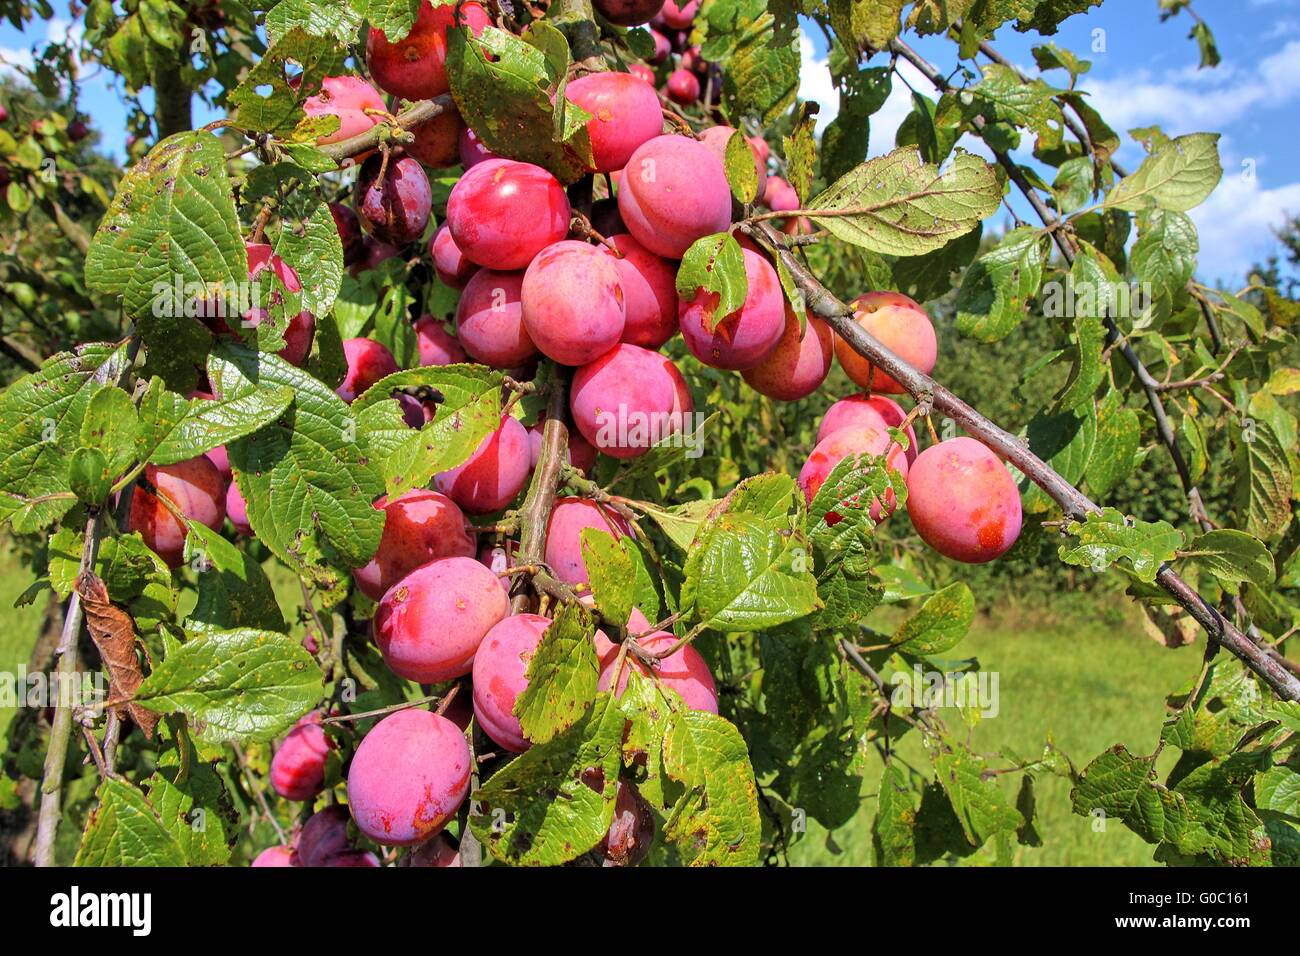 Plums in a branch - Stock Image